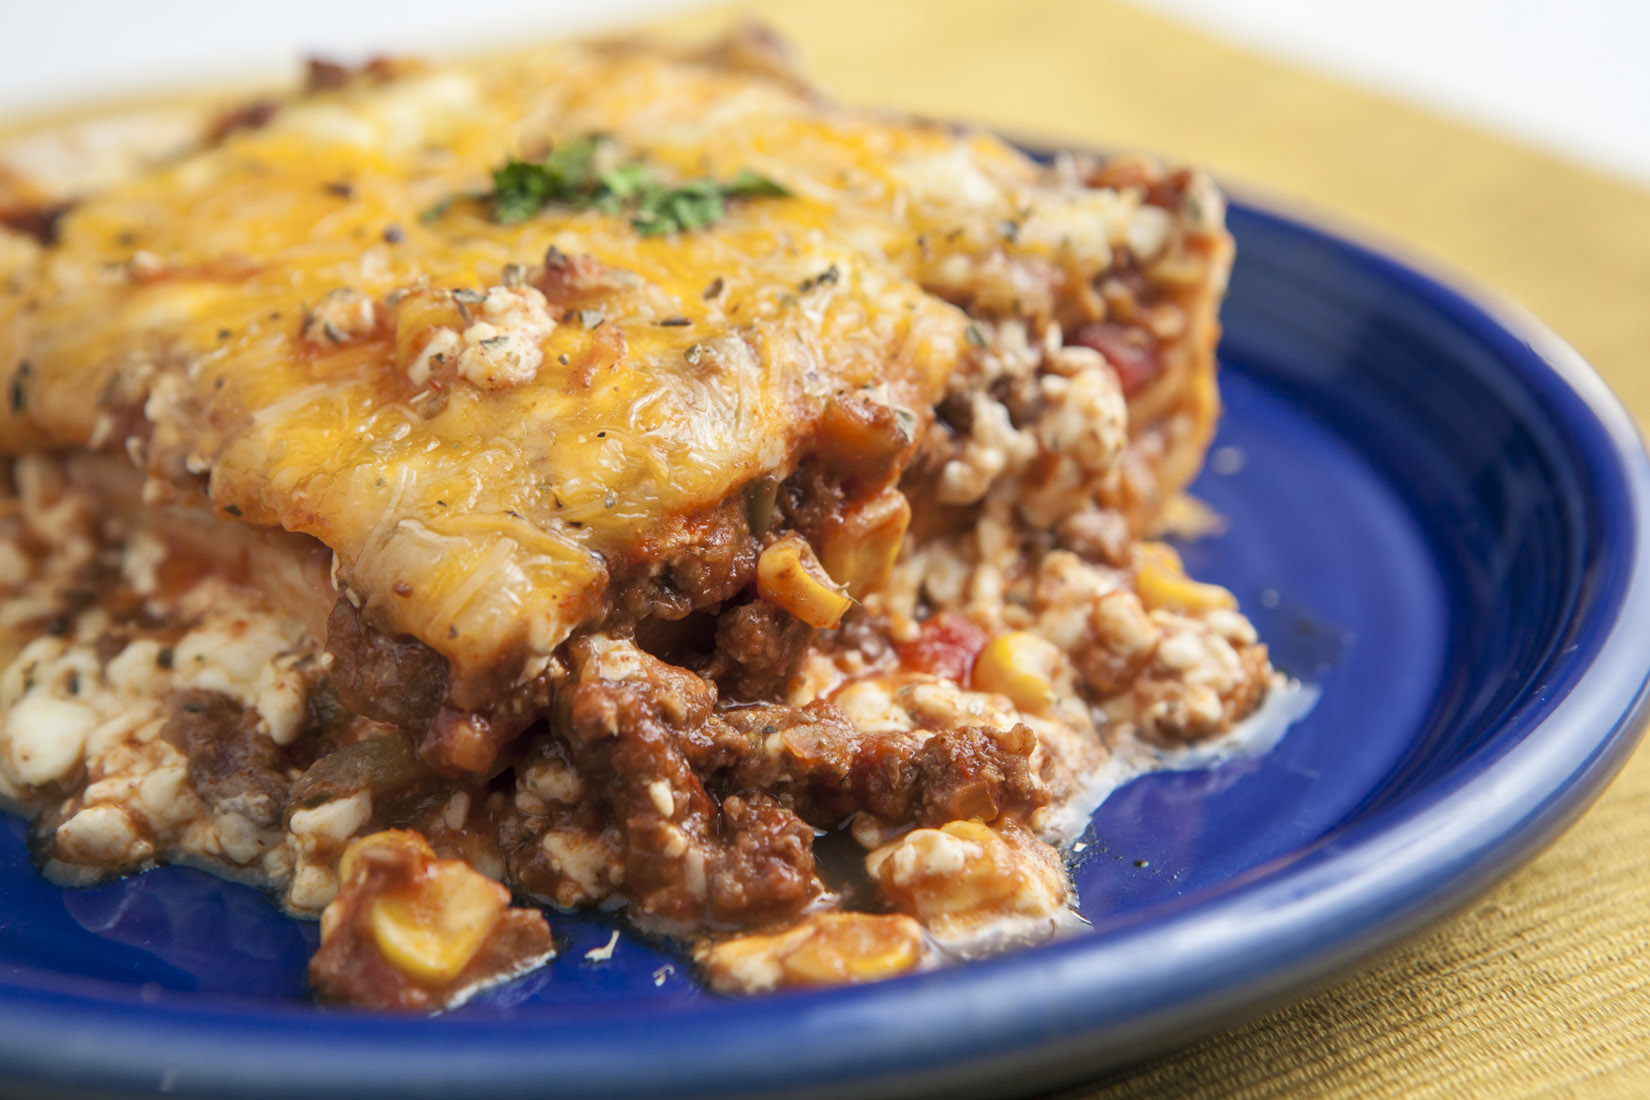 FMM2017-3441 In a Jam? Mexican Lasagna is a Crowd Pleaser for Last Minute Entertaining